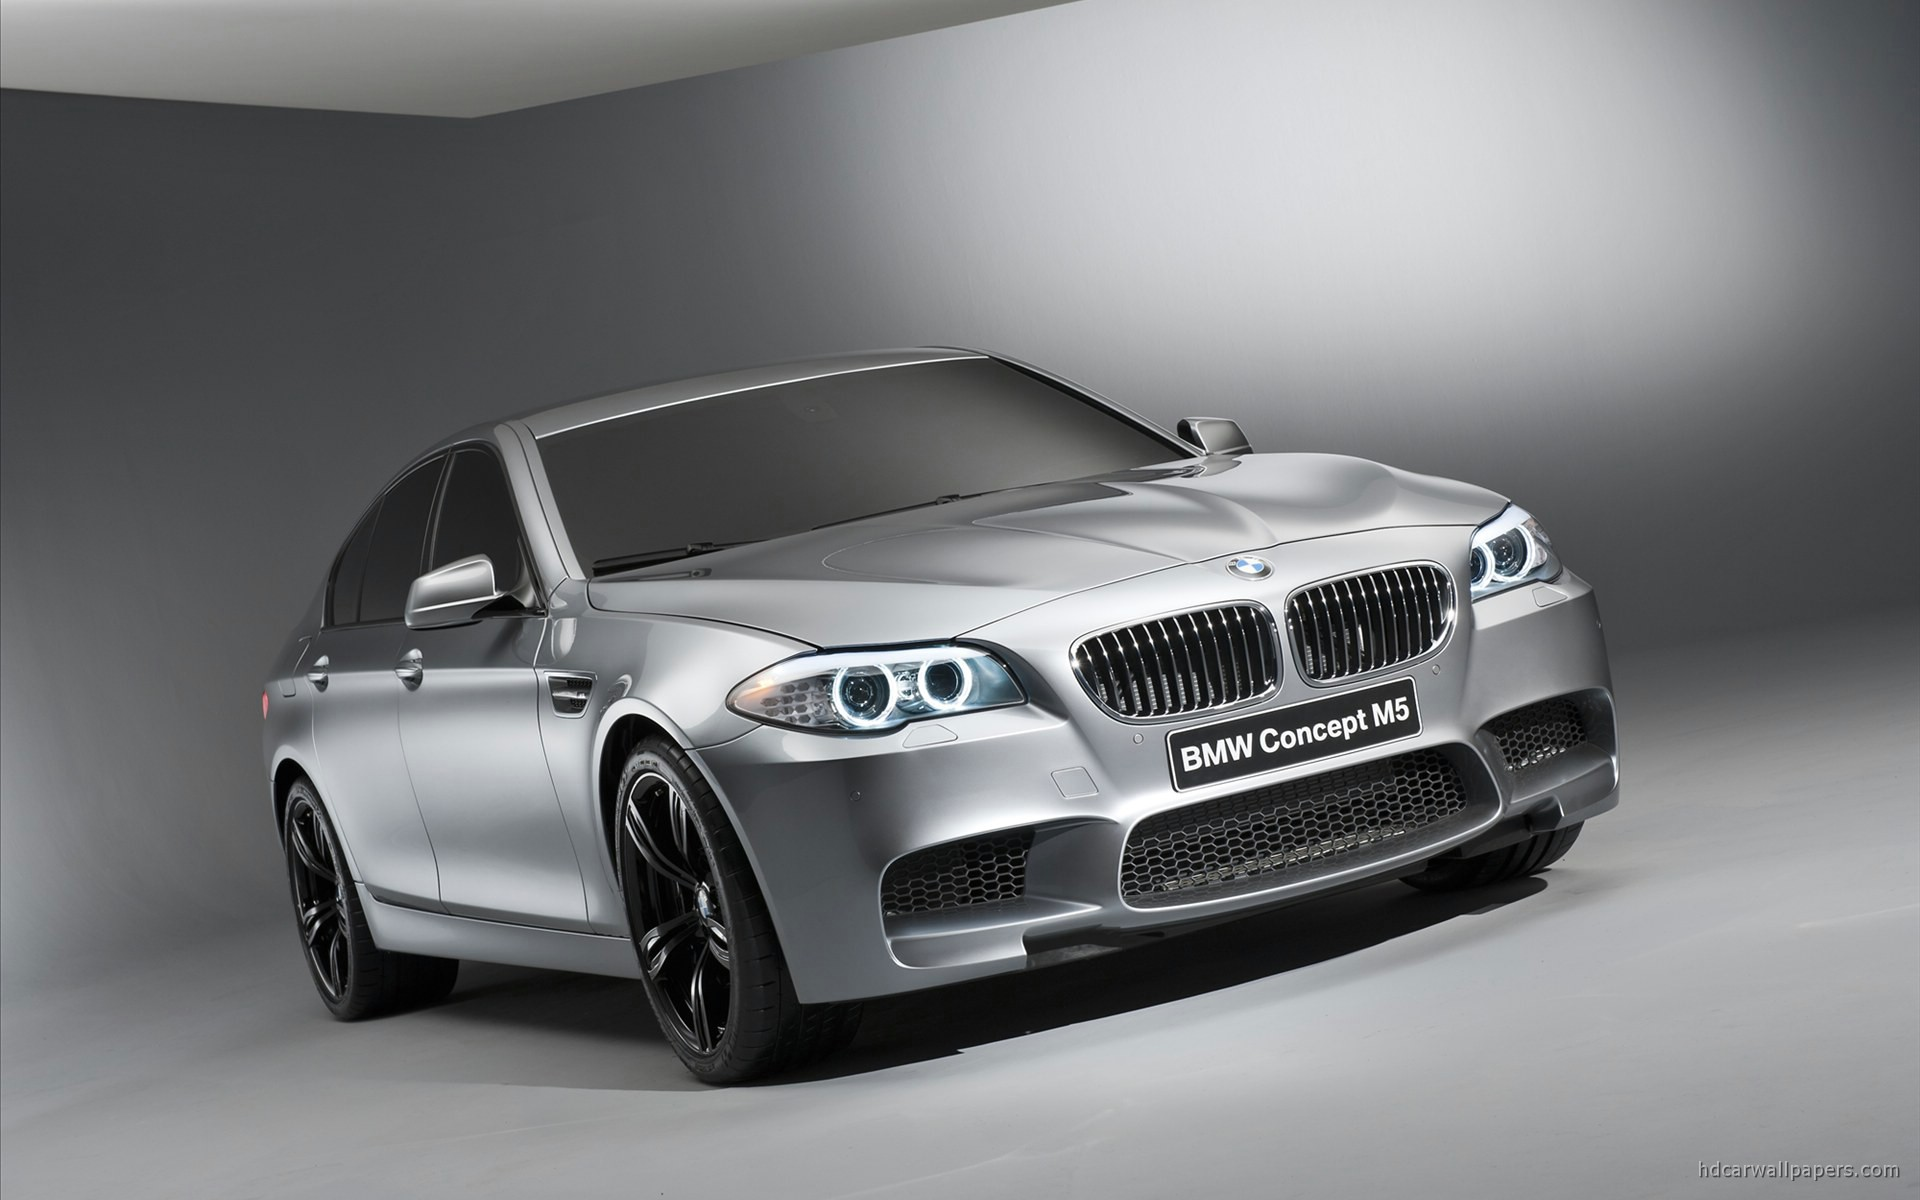 2011 Bmw M5 Concept Car Wallpaper Hd Car Wallpapers Id